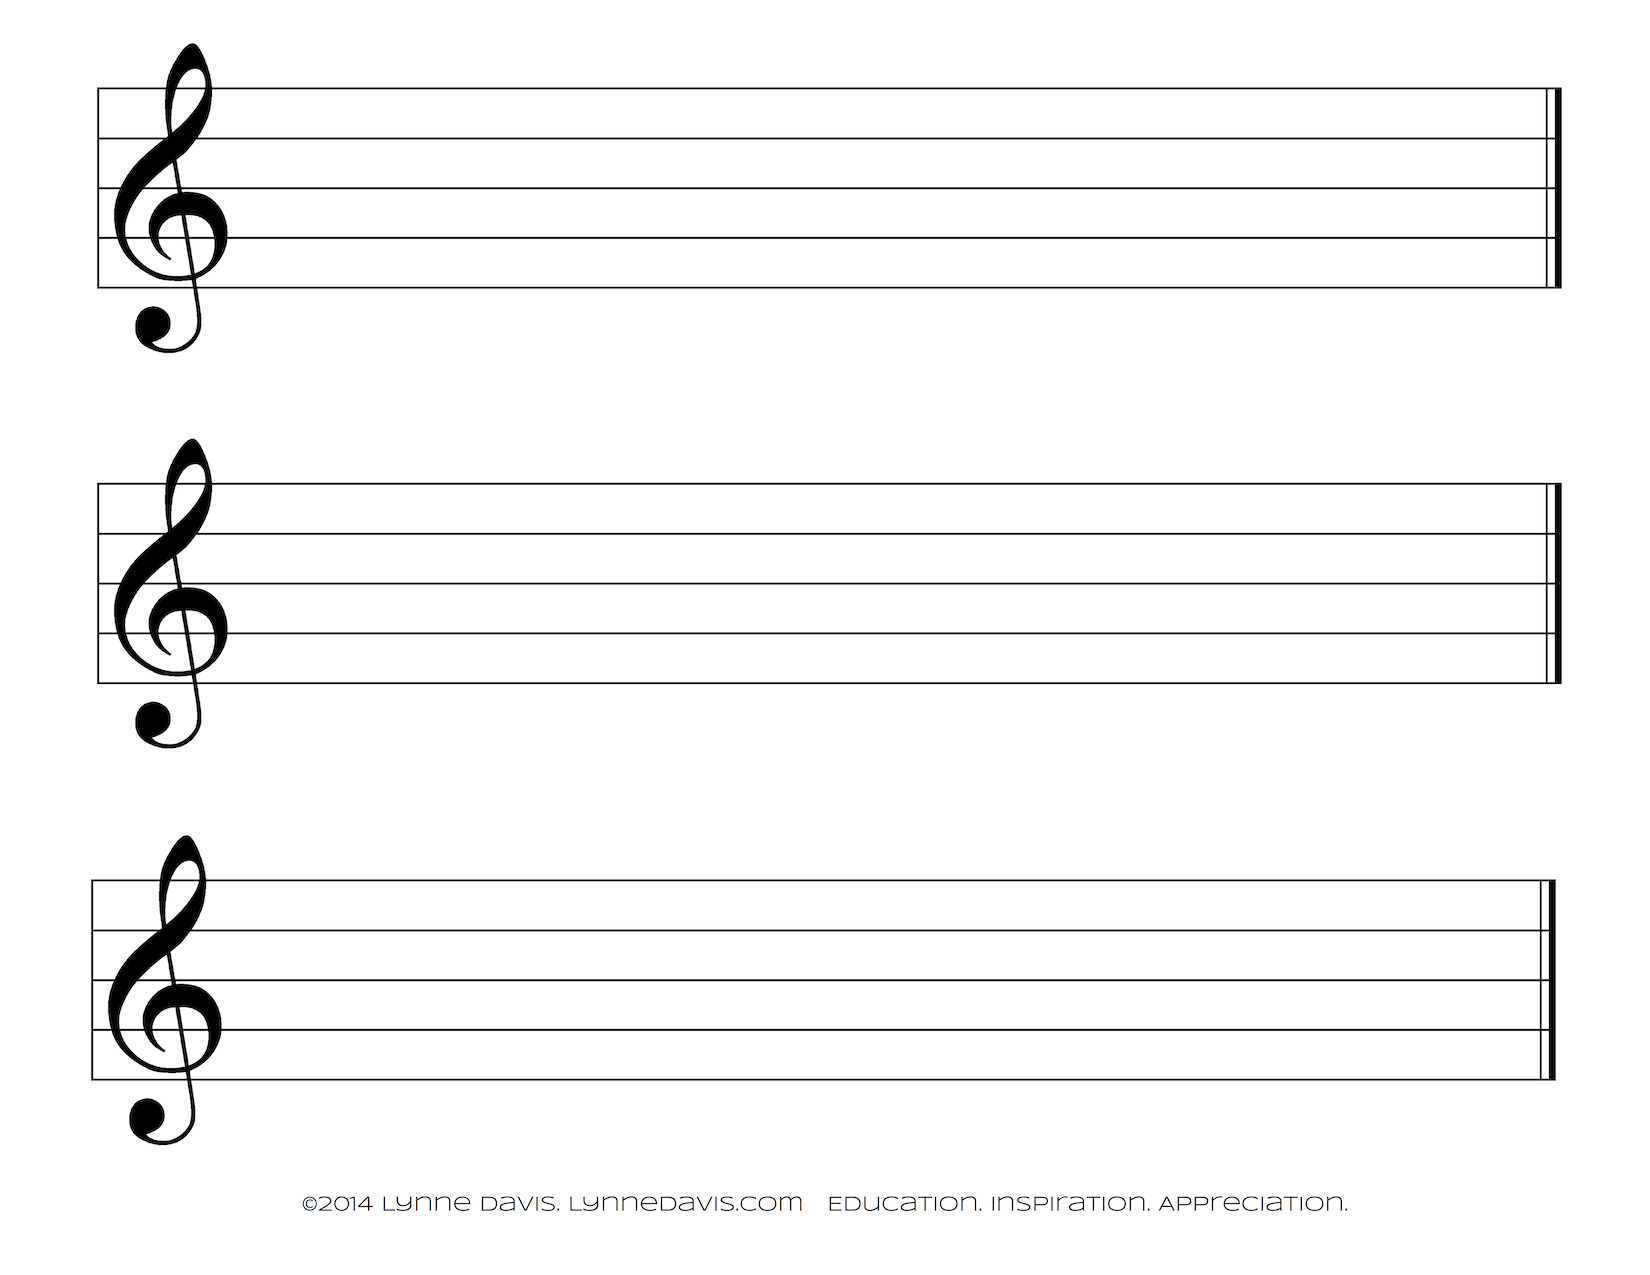 treble clef staff paper